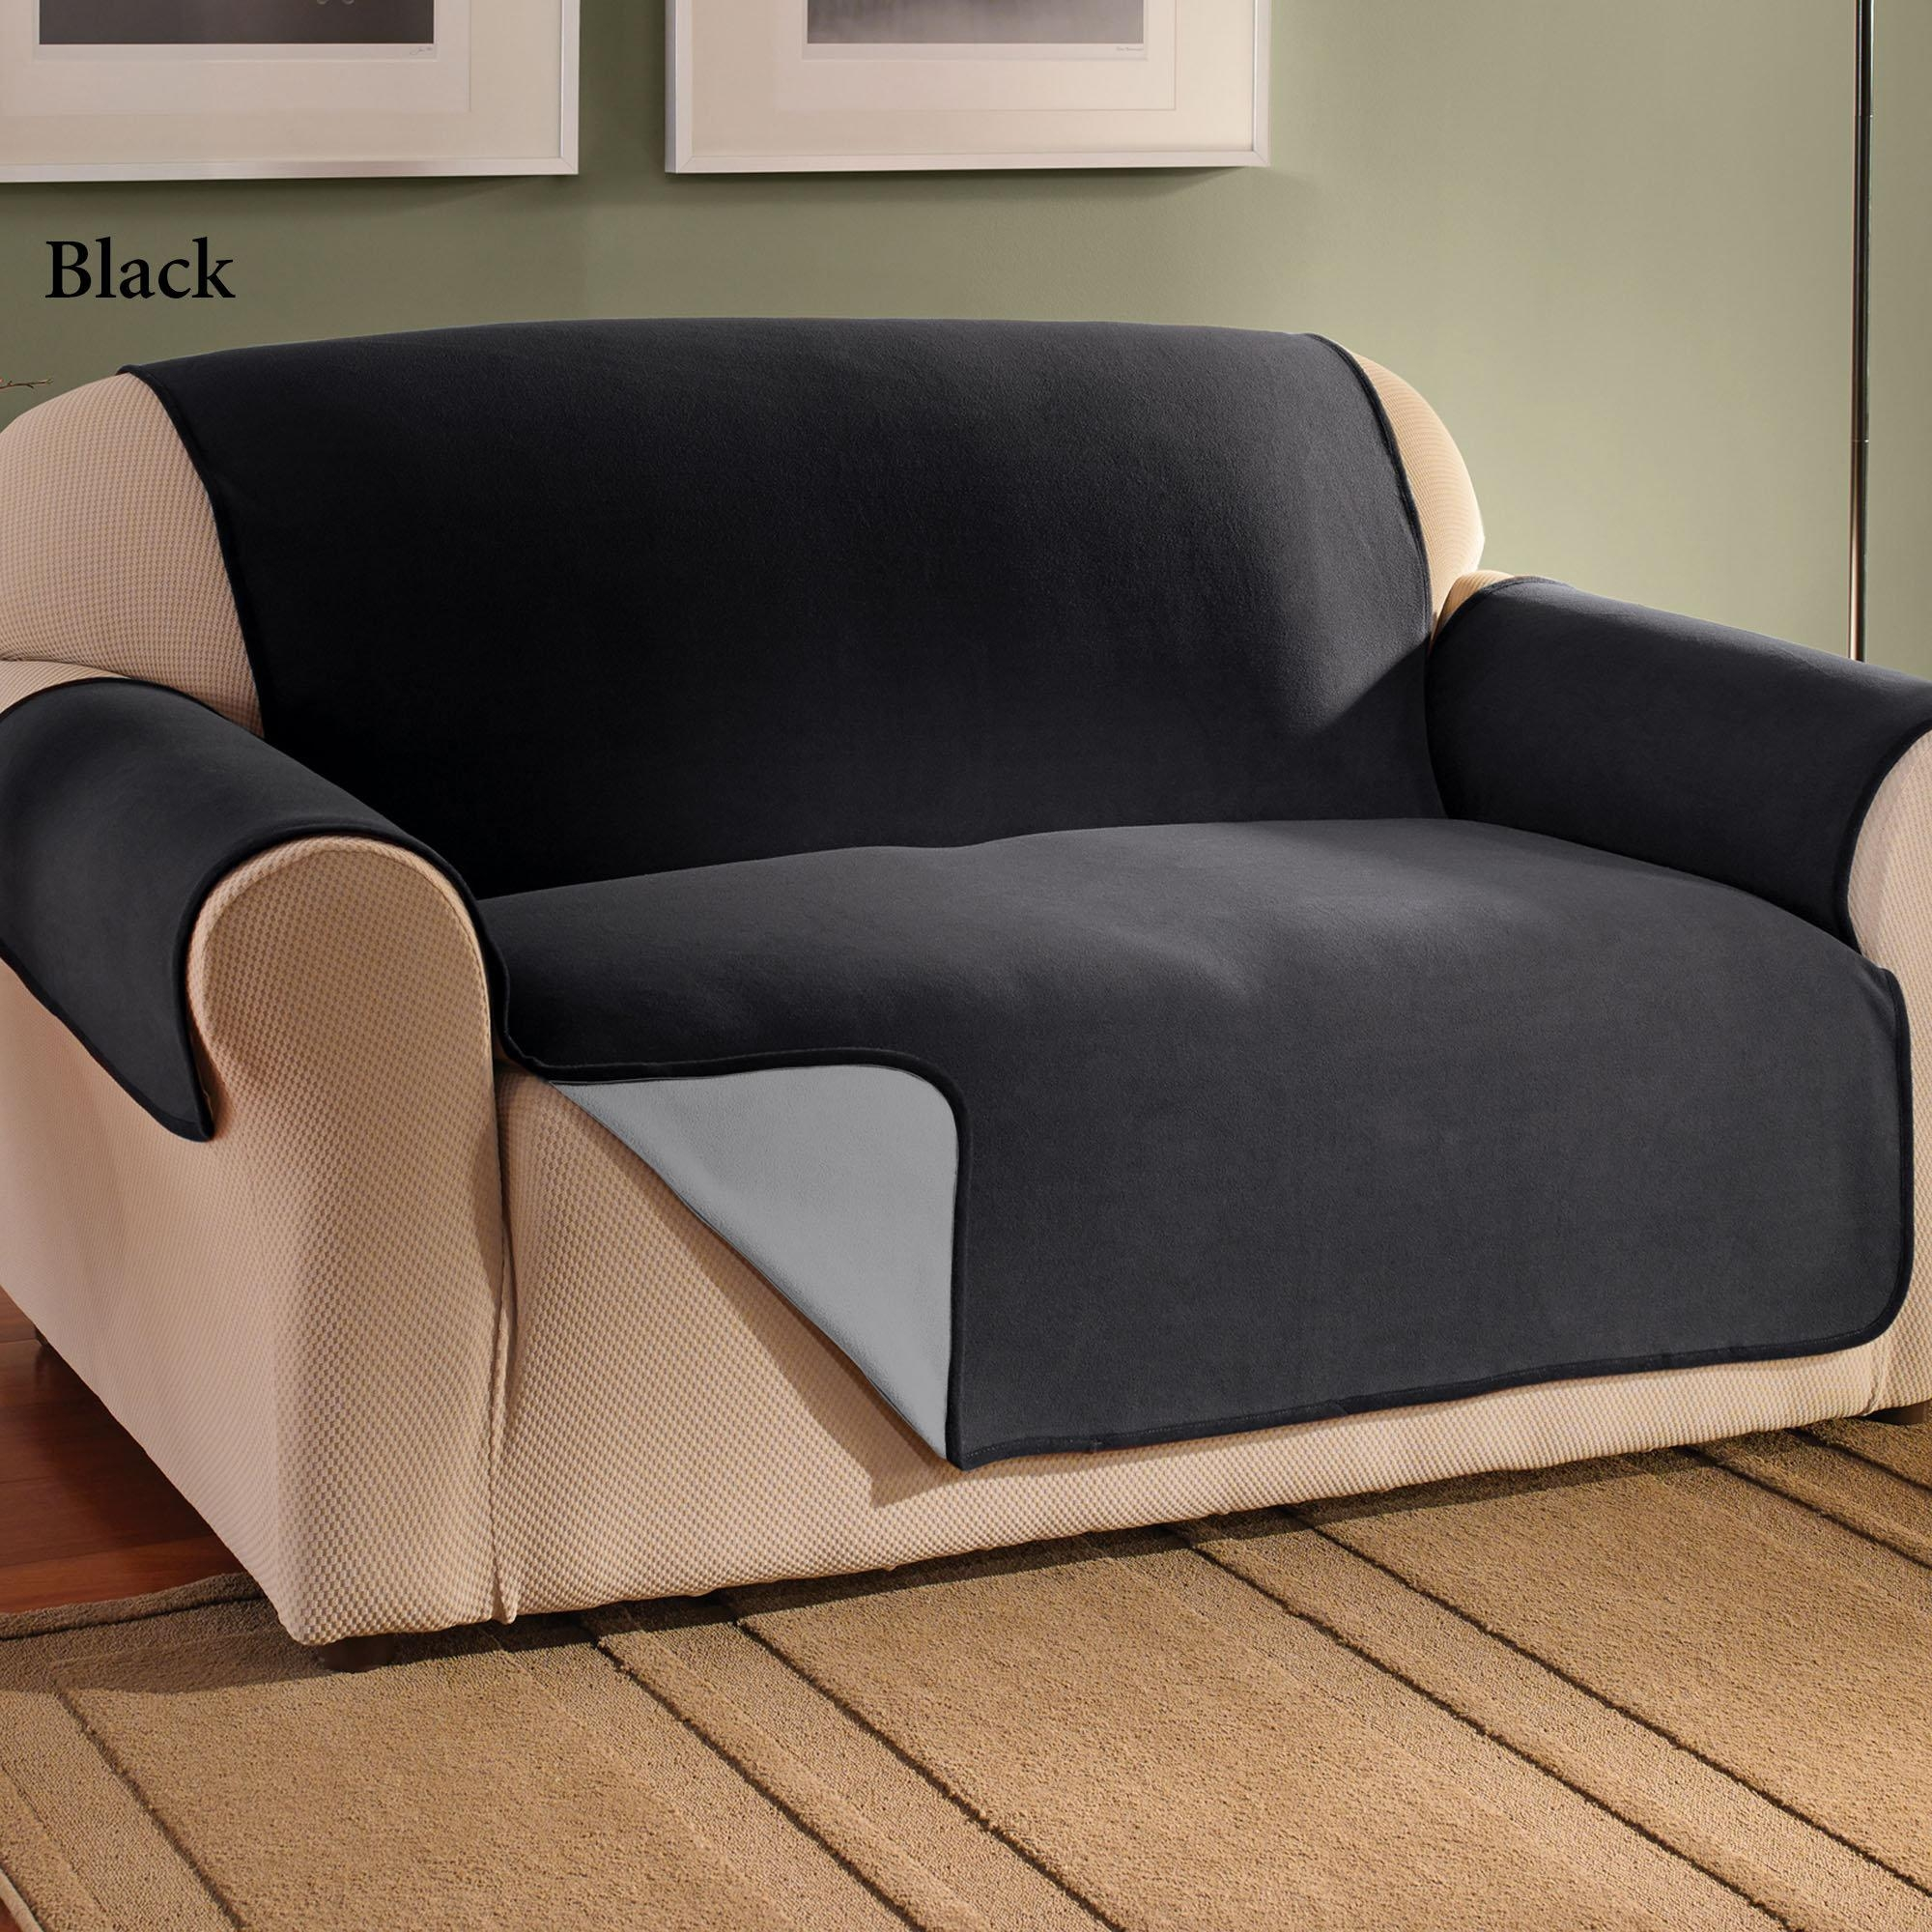 Furniture: Comfortable Cream Walmart Sofa Covers On Walmart Rugs With Regard To Sofas With Black Cover (Image 8 of 20)